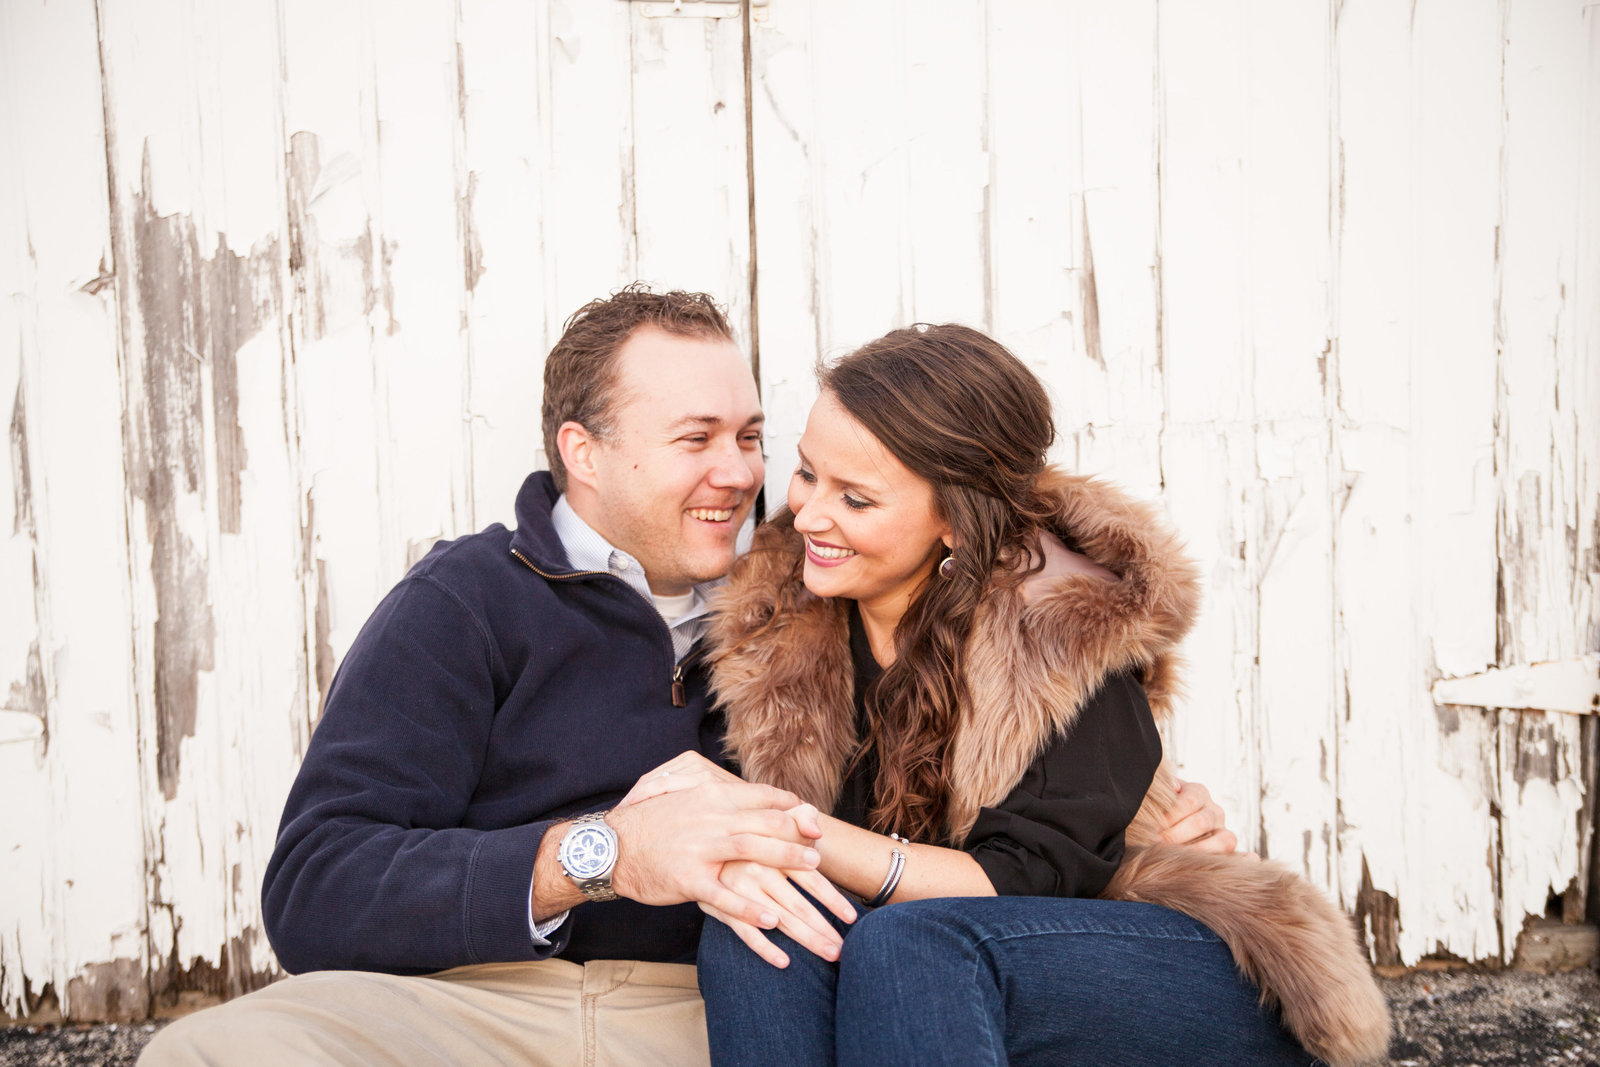 Milwaukee Wisconsin Wedding photographer Menomonee Falls WI Engagement Session M+J-21